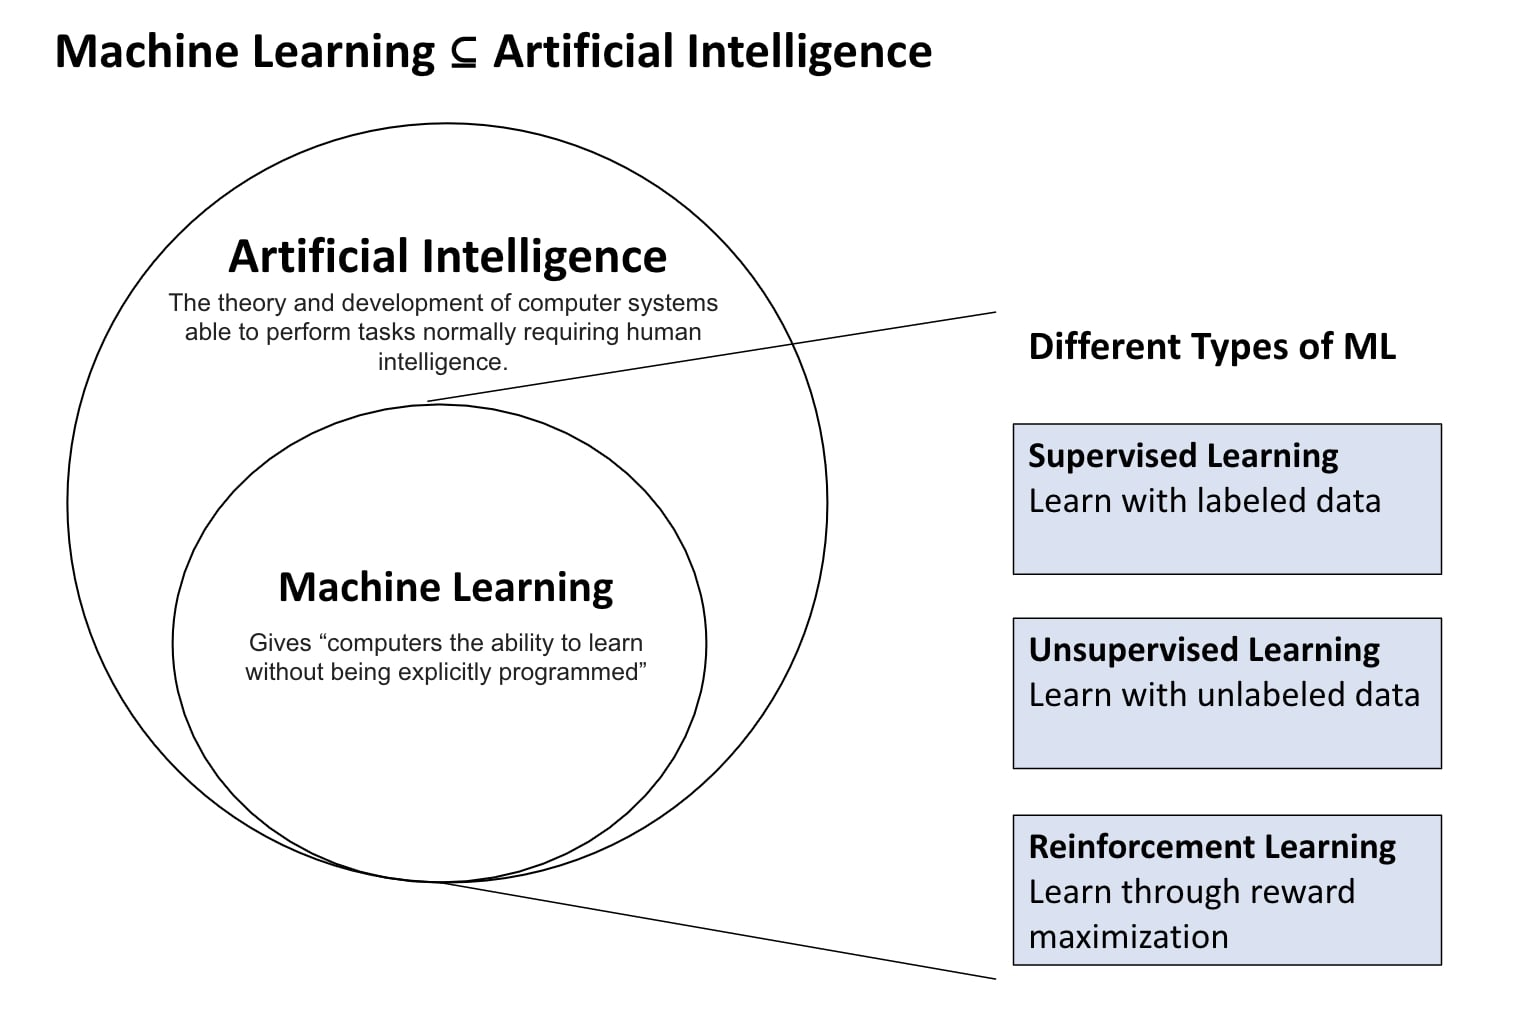 Illustration: Machine Learning is a subset of Artificial Intelligence. There are three types of ML:Supervised Learning, Unsupervised Learning and Reinforcement Learning.